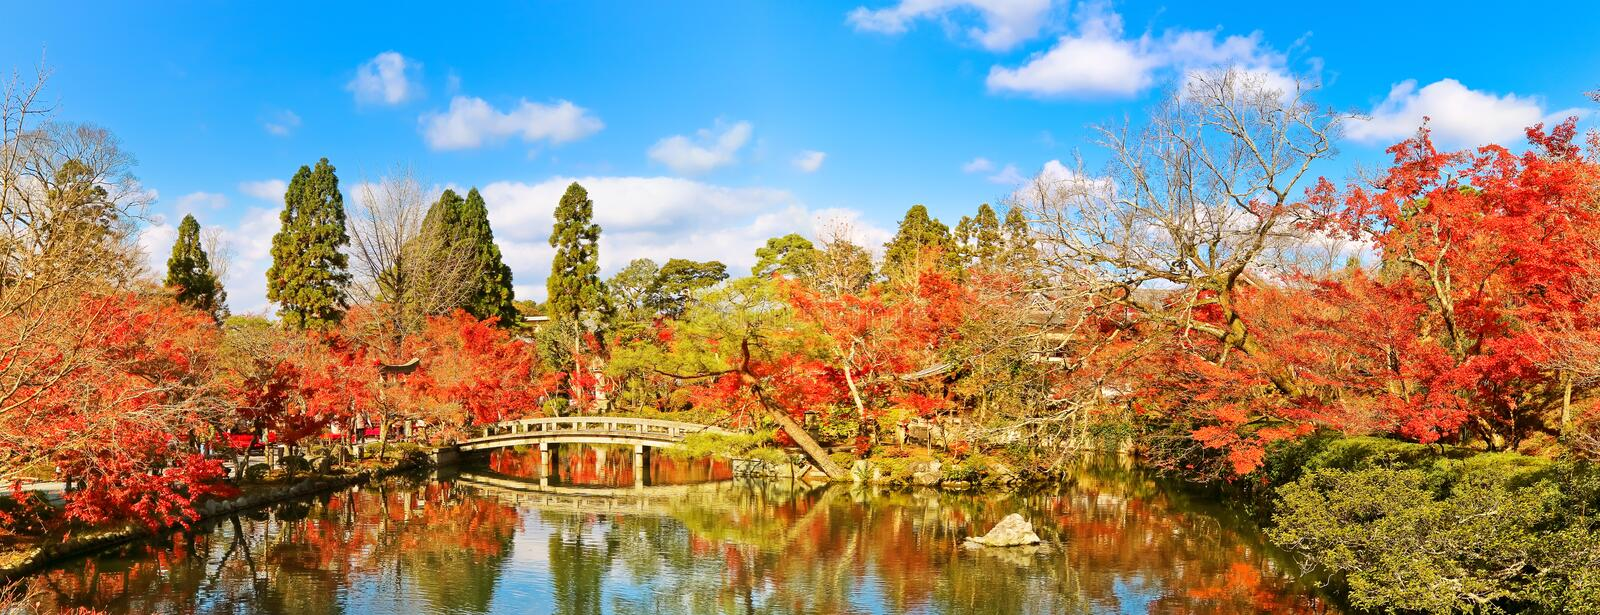 Japanese garden in autumn in Kyoto, Japan. royalty free stock photography